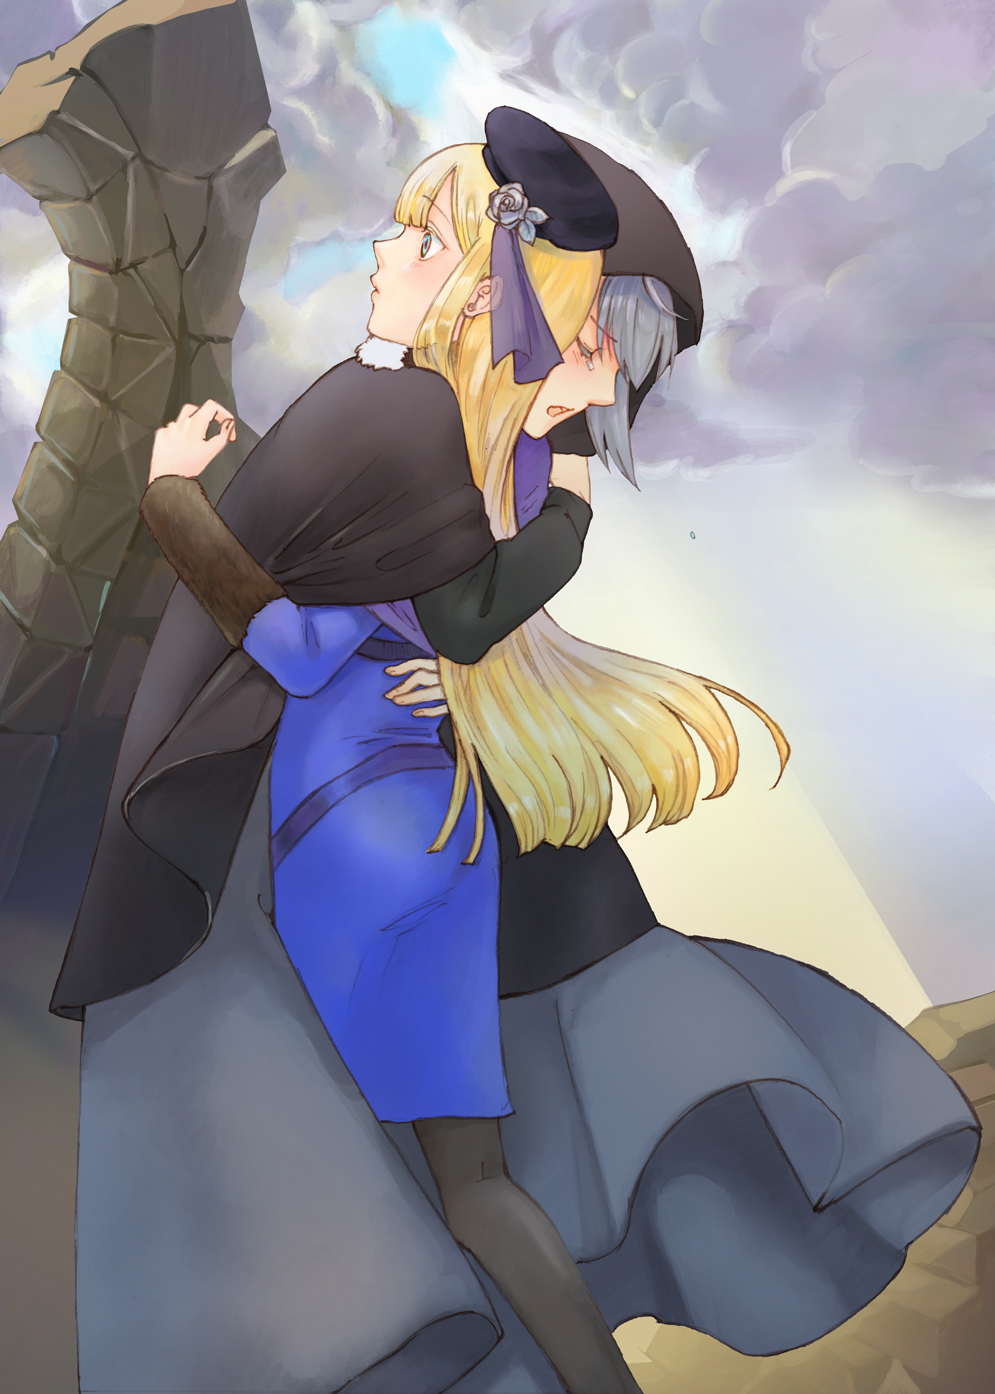 2girls ass bangs black_cape black_headwear black_legwear blonde_hair blue_jacket blush cape commentary_request day dress fate_(series) feet_out_of_frame flower from_side fur_trim gray_(fate) green_eyes grey_dress grey_hair hat hat_flower highres hug jacket long_hair long_sleeves looking_up lord_el-melloi_ii_case_files multiple_girls open_mouth outdoors pantyhose reines_el-melloi_archisorte satou_usuzuku short_hair tearing_up tilted_headwear